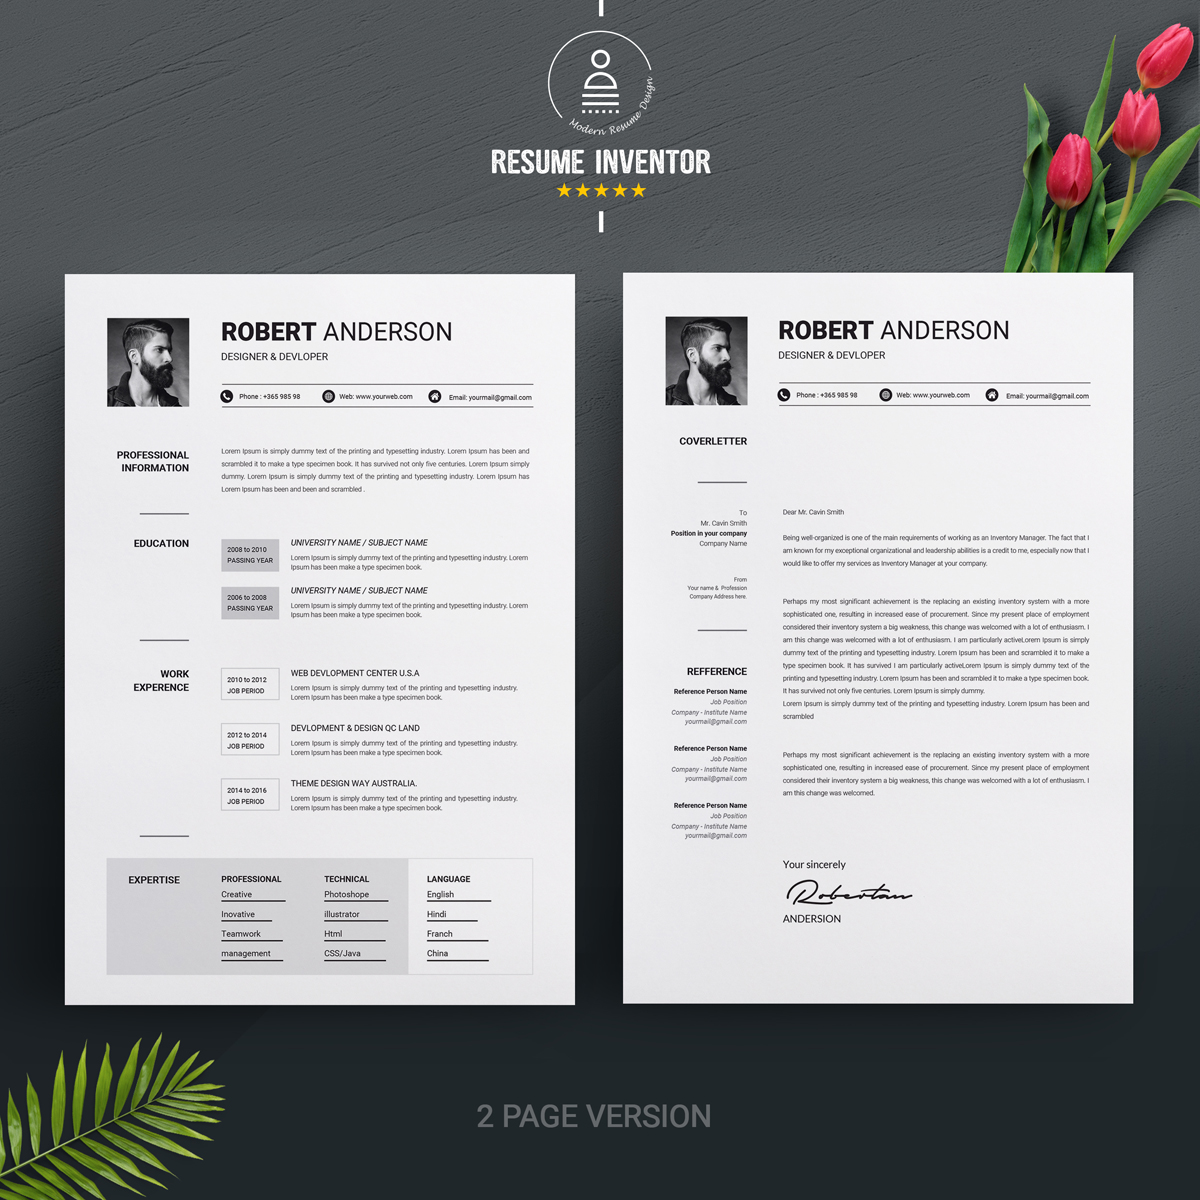 Robert Anderson Clean Resume Template